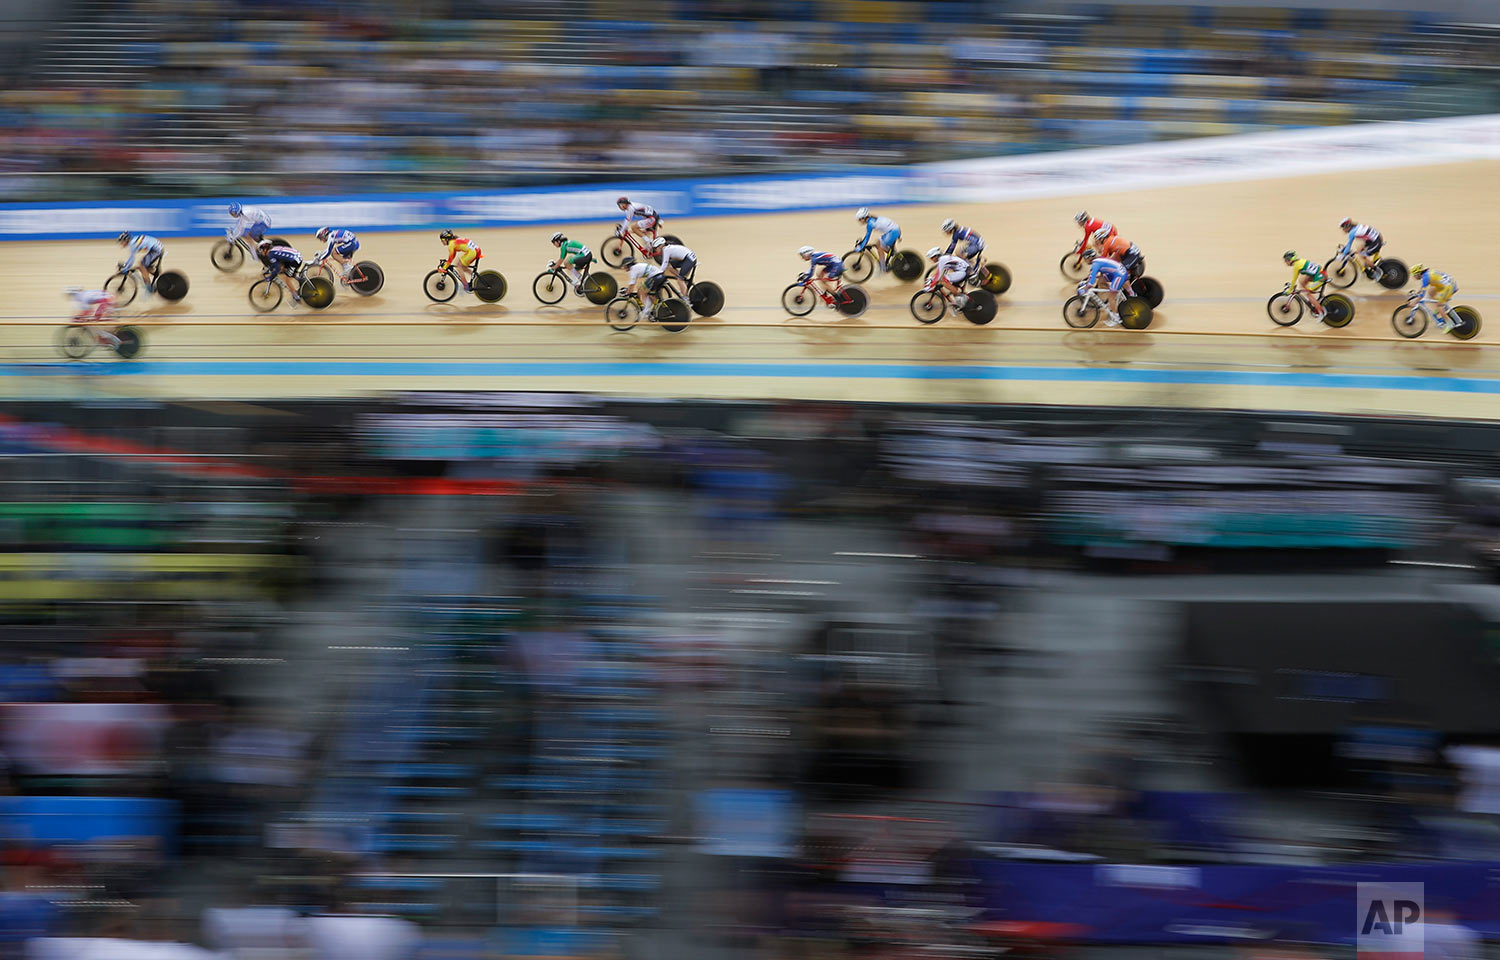 Riders compete in the Women's Scratch Race at the World Track Cycling championships in Hong Kong, Wednesday, April 12, 2017.  (AP Photo/Kin Cheung)